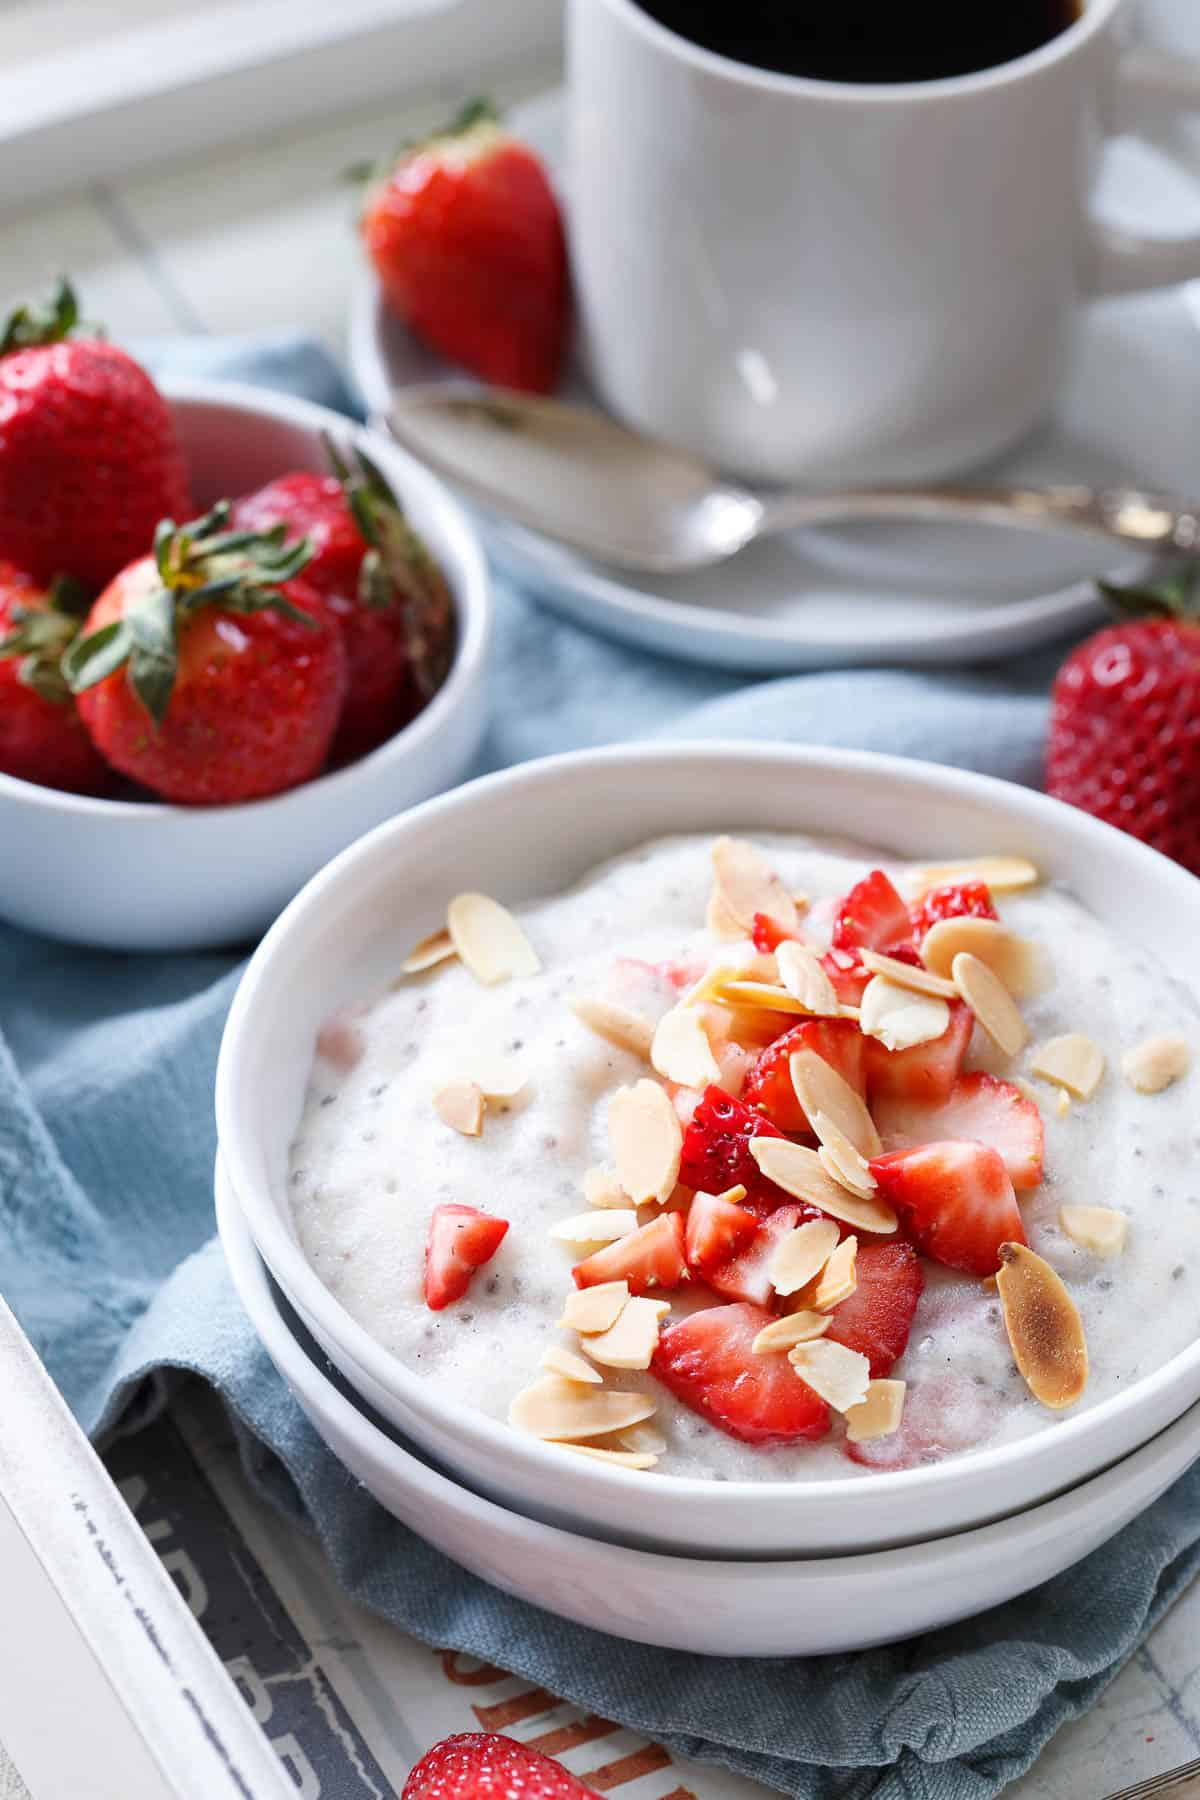 These protein packed polenta breakfast bowls are made with creamy coconut milk and filled with juicy ripe spring strawberries for a sweet start to the day.